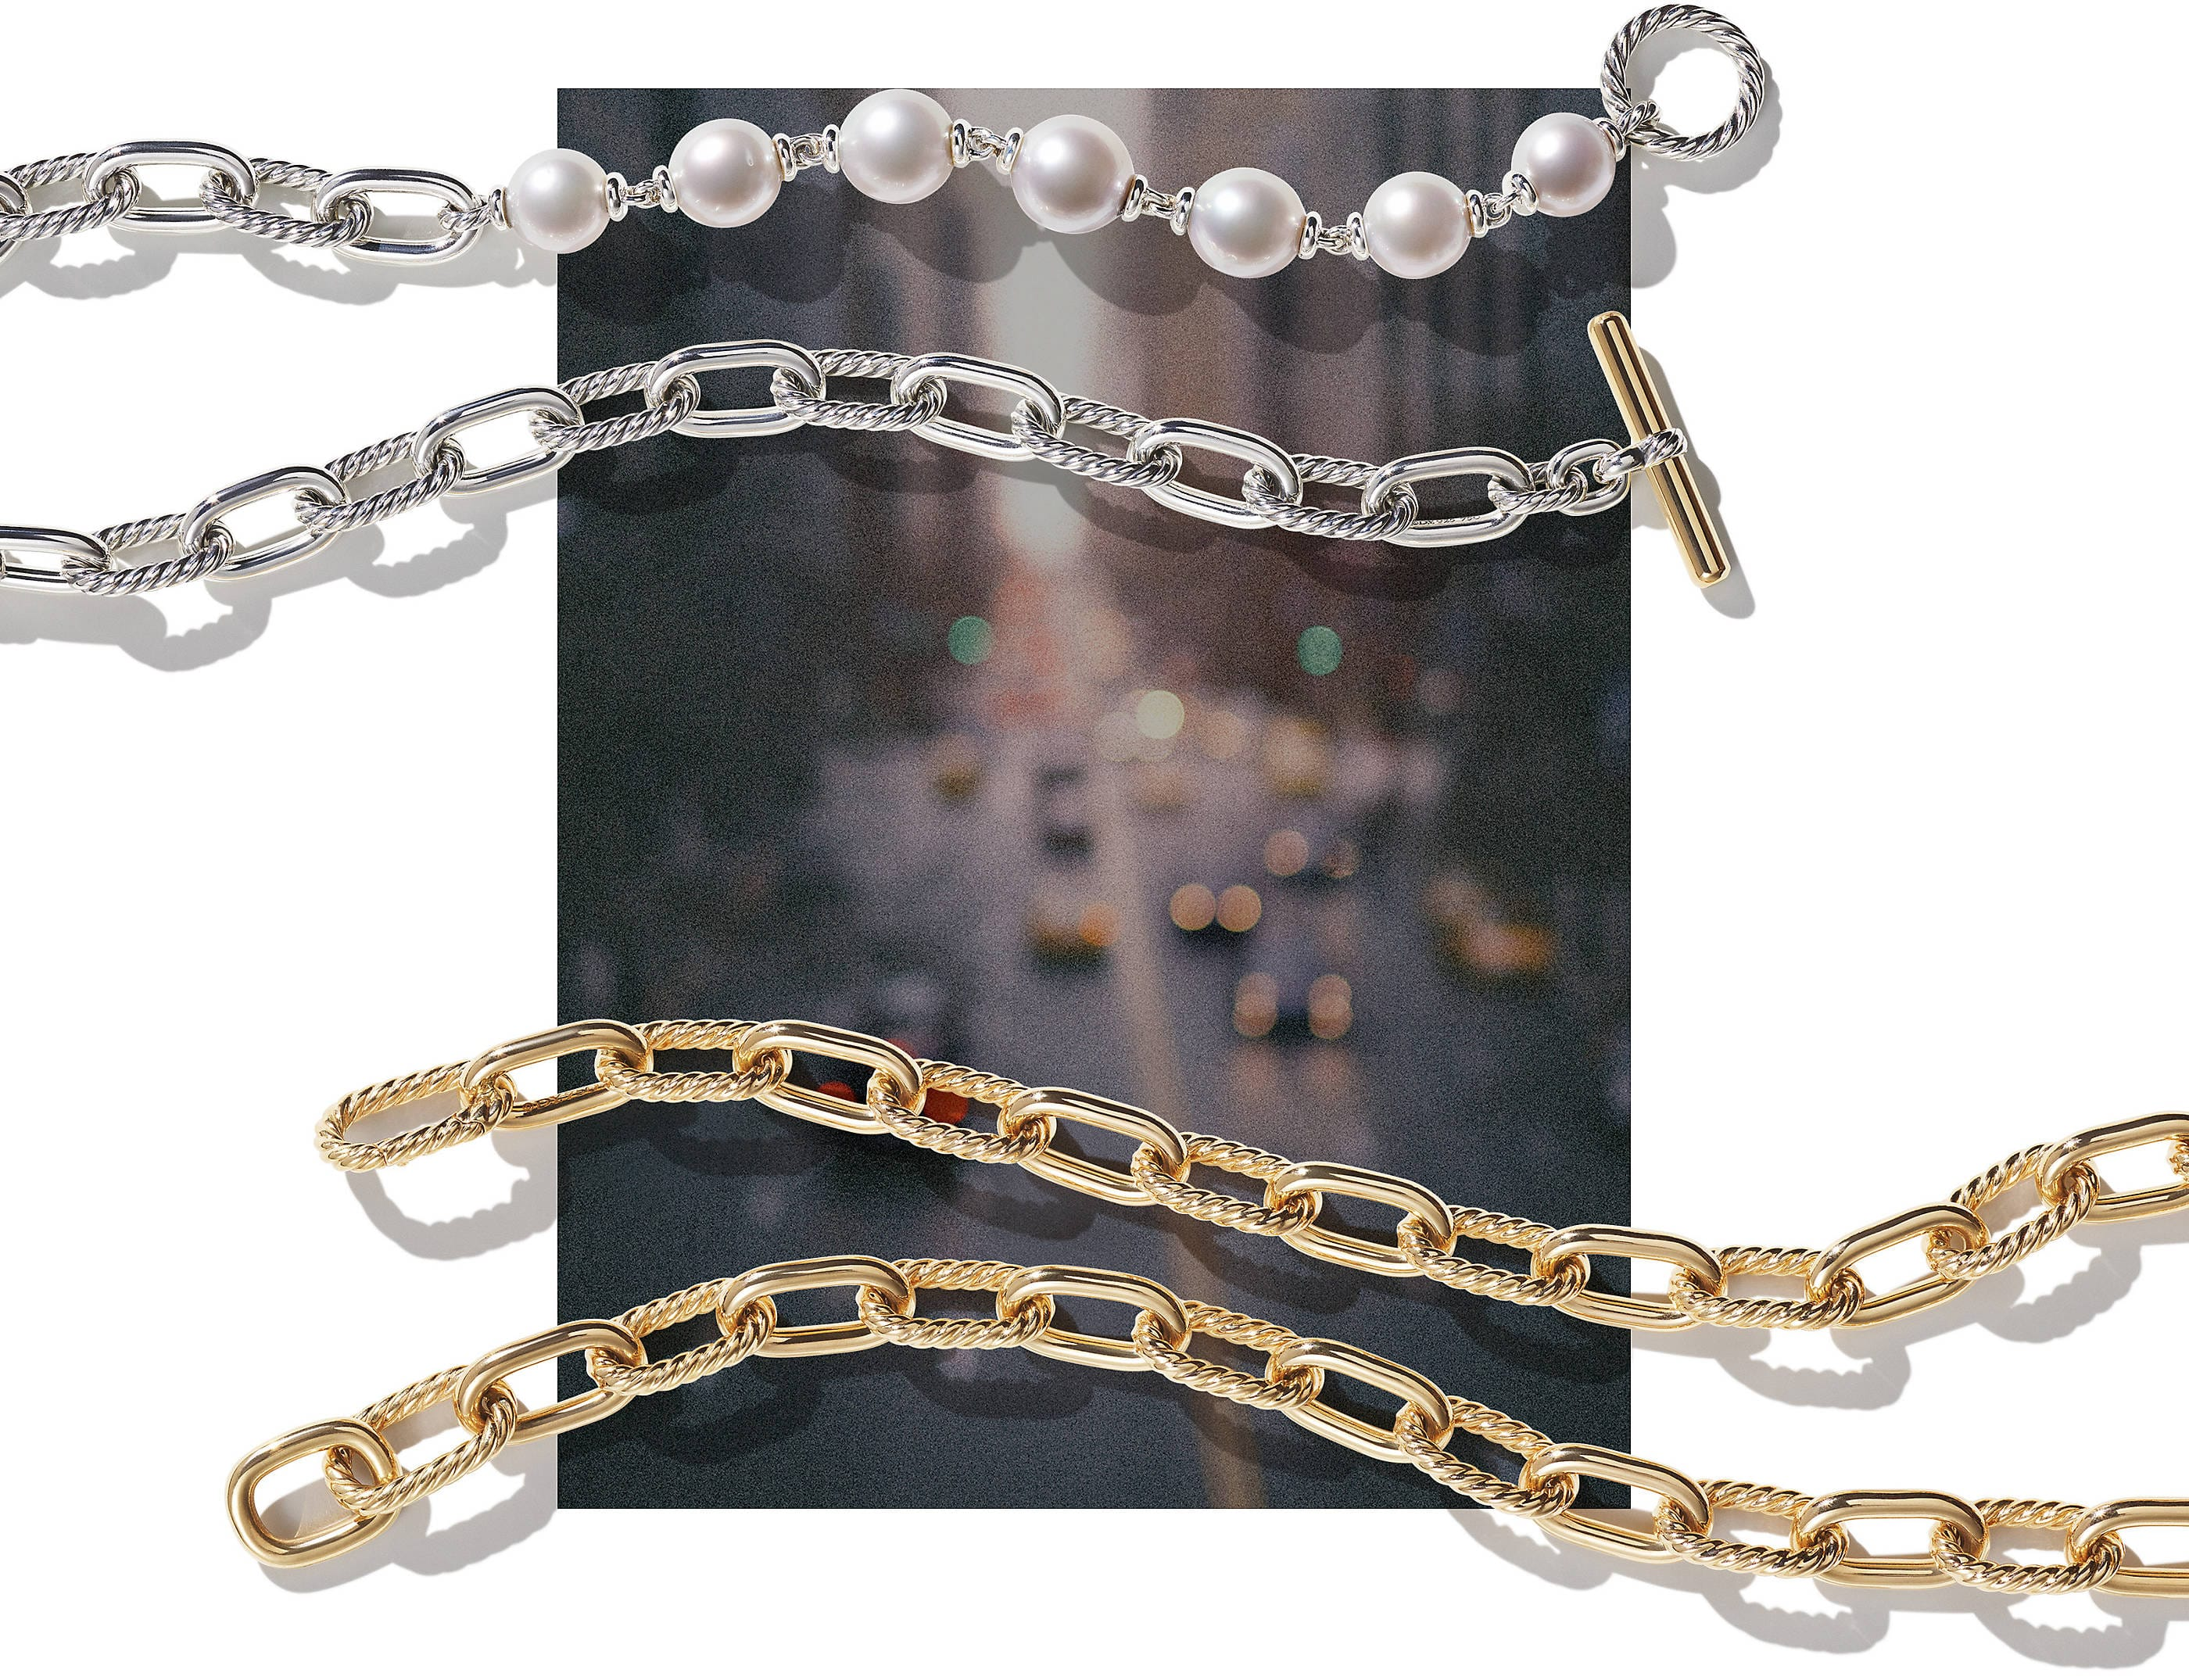 A color photograph shows two David Yurman DY Madison chain necklaces lying atop a soft-focus image of a street in NYC with cars and buildings. The top necklace is crafted from sterling silver with cultured South Sea pearls and an 18K yellow gold toggle. The bottom necklace is crafted from 18K yellow gold.